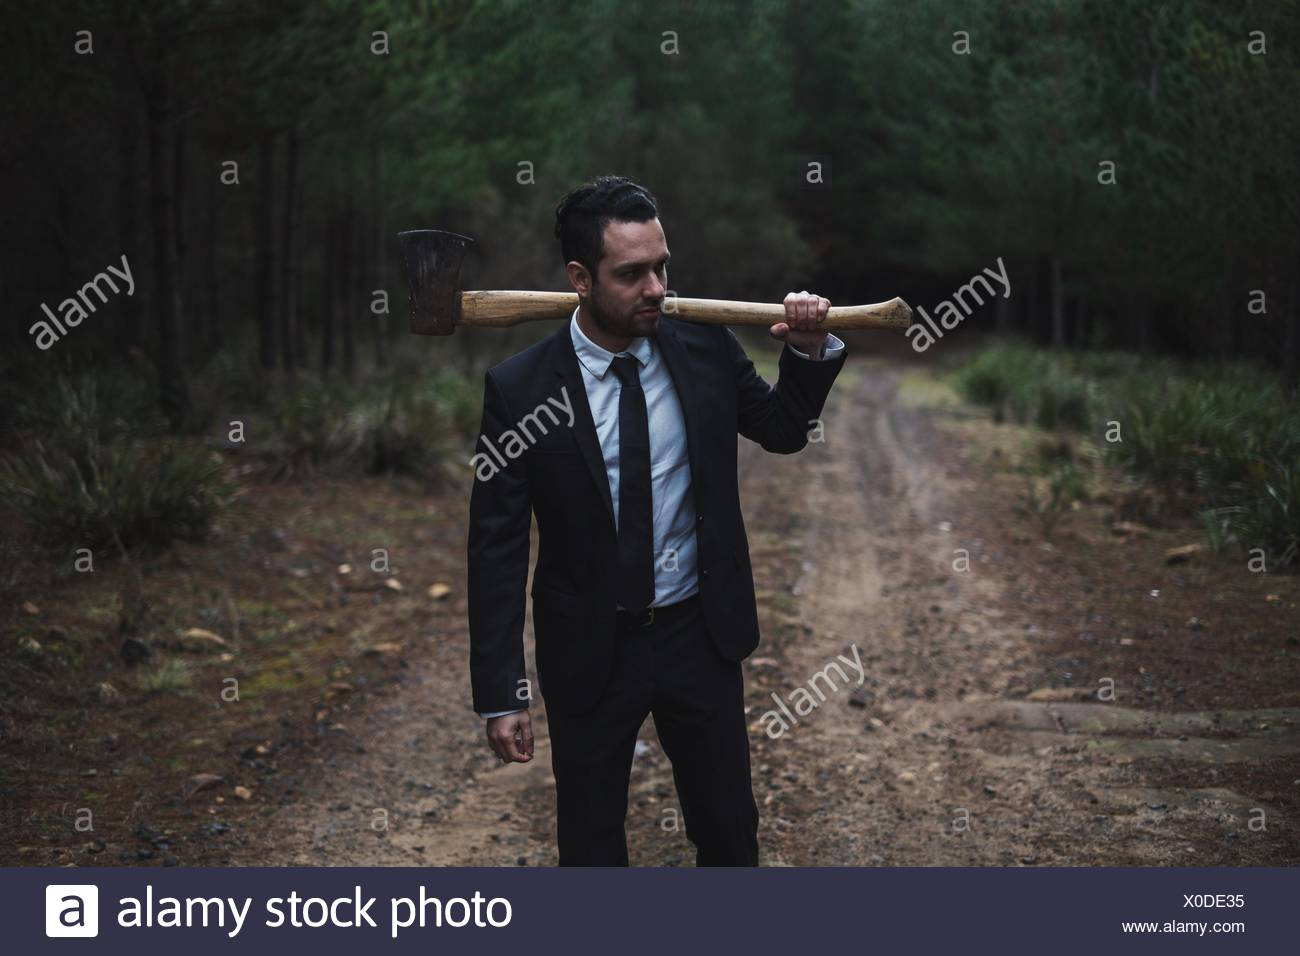 Young Businessman With Axe Standing On Dirt Road In Forest - Stock Image